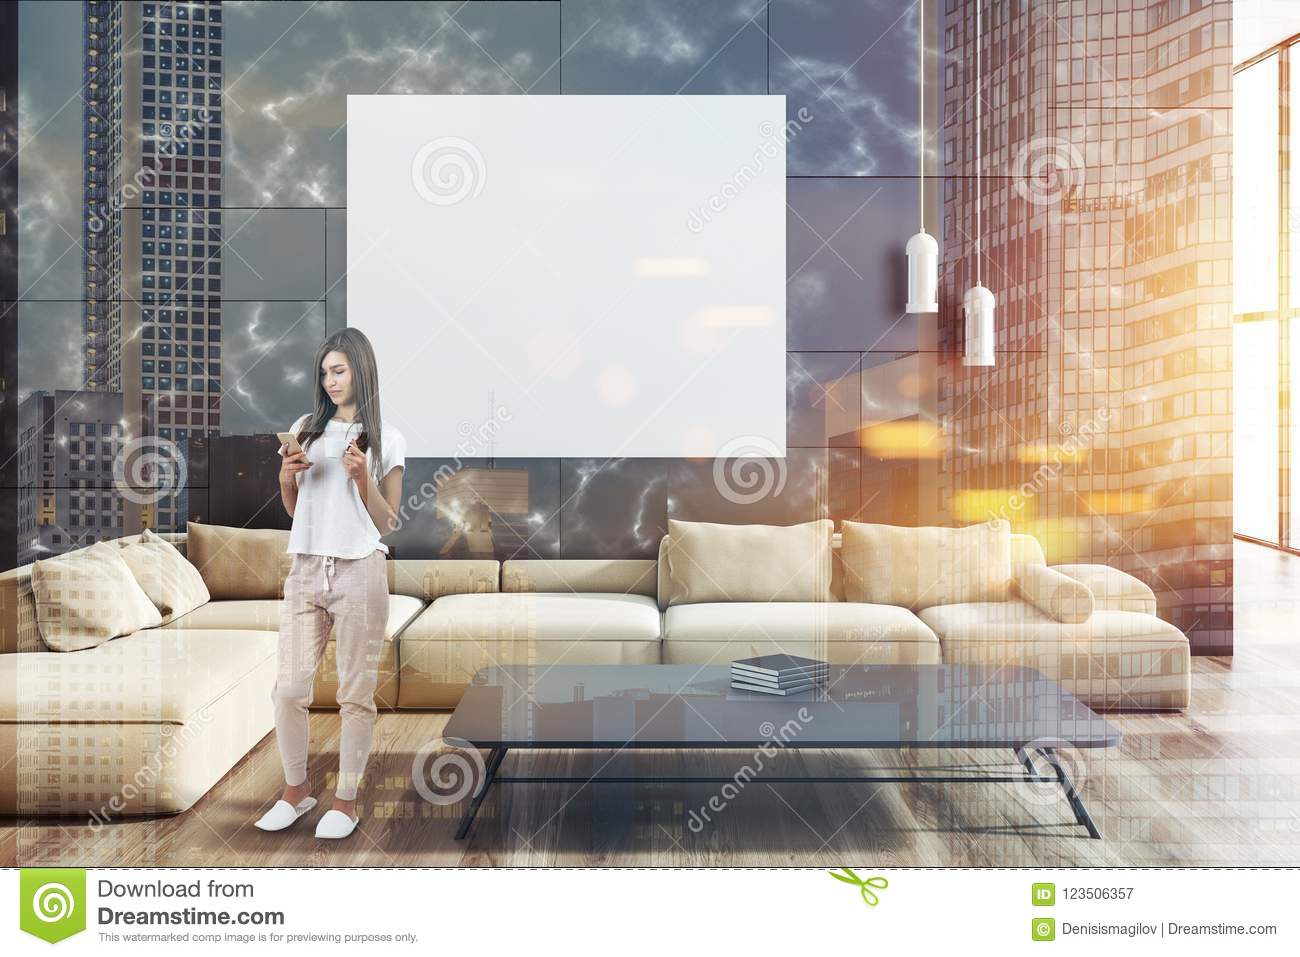 Black Marble Living Room Beige Sofa Poster Woman Stock Illustration Illustration Of Cozy Copy 123506357